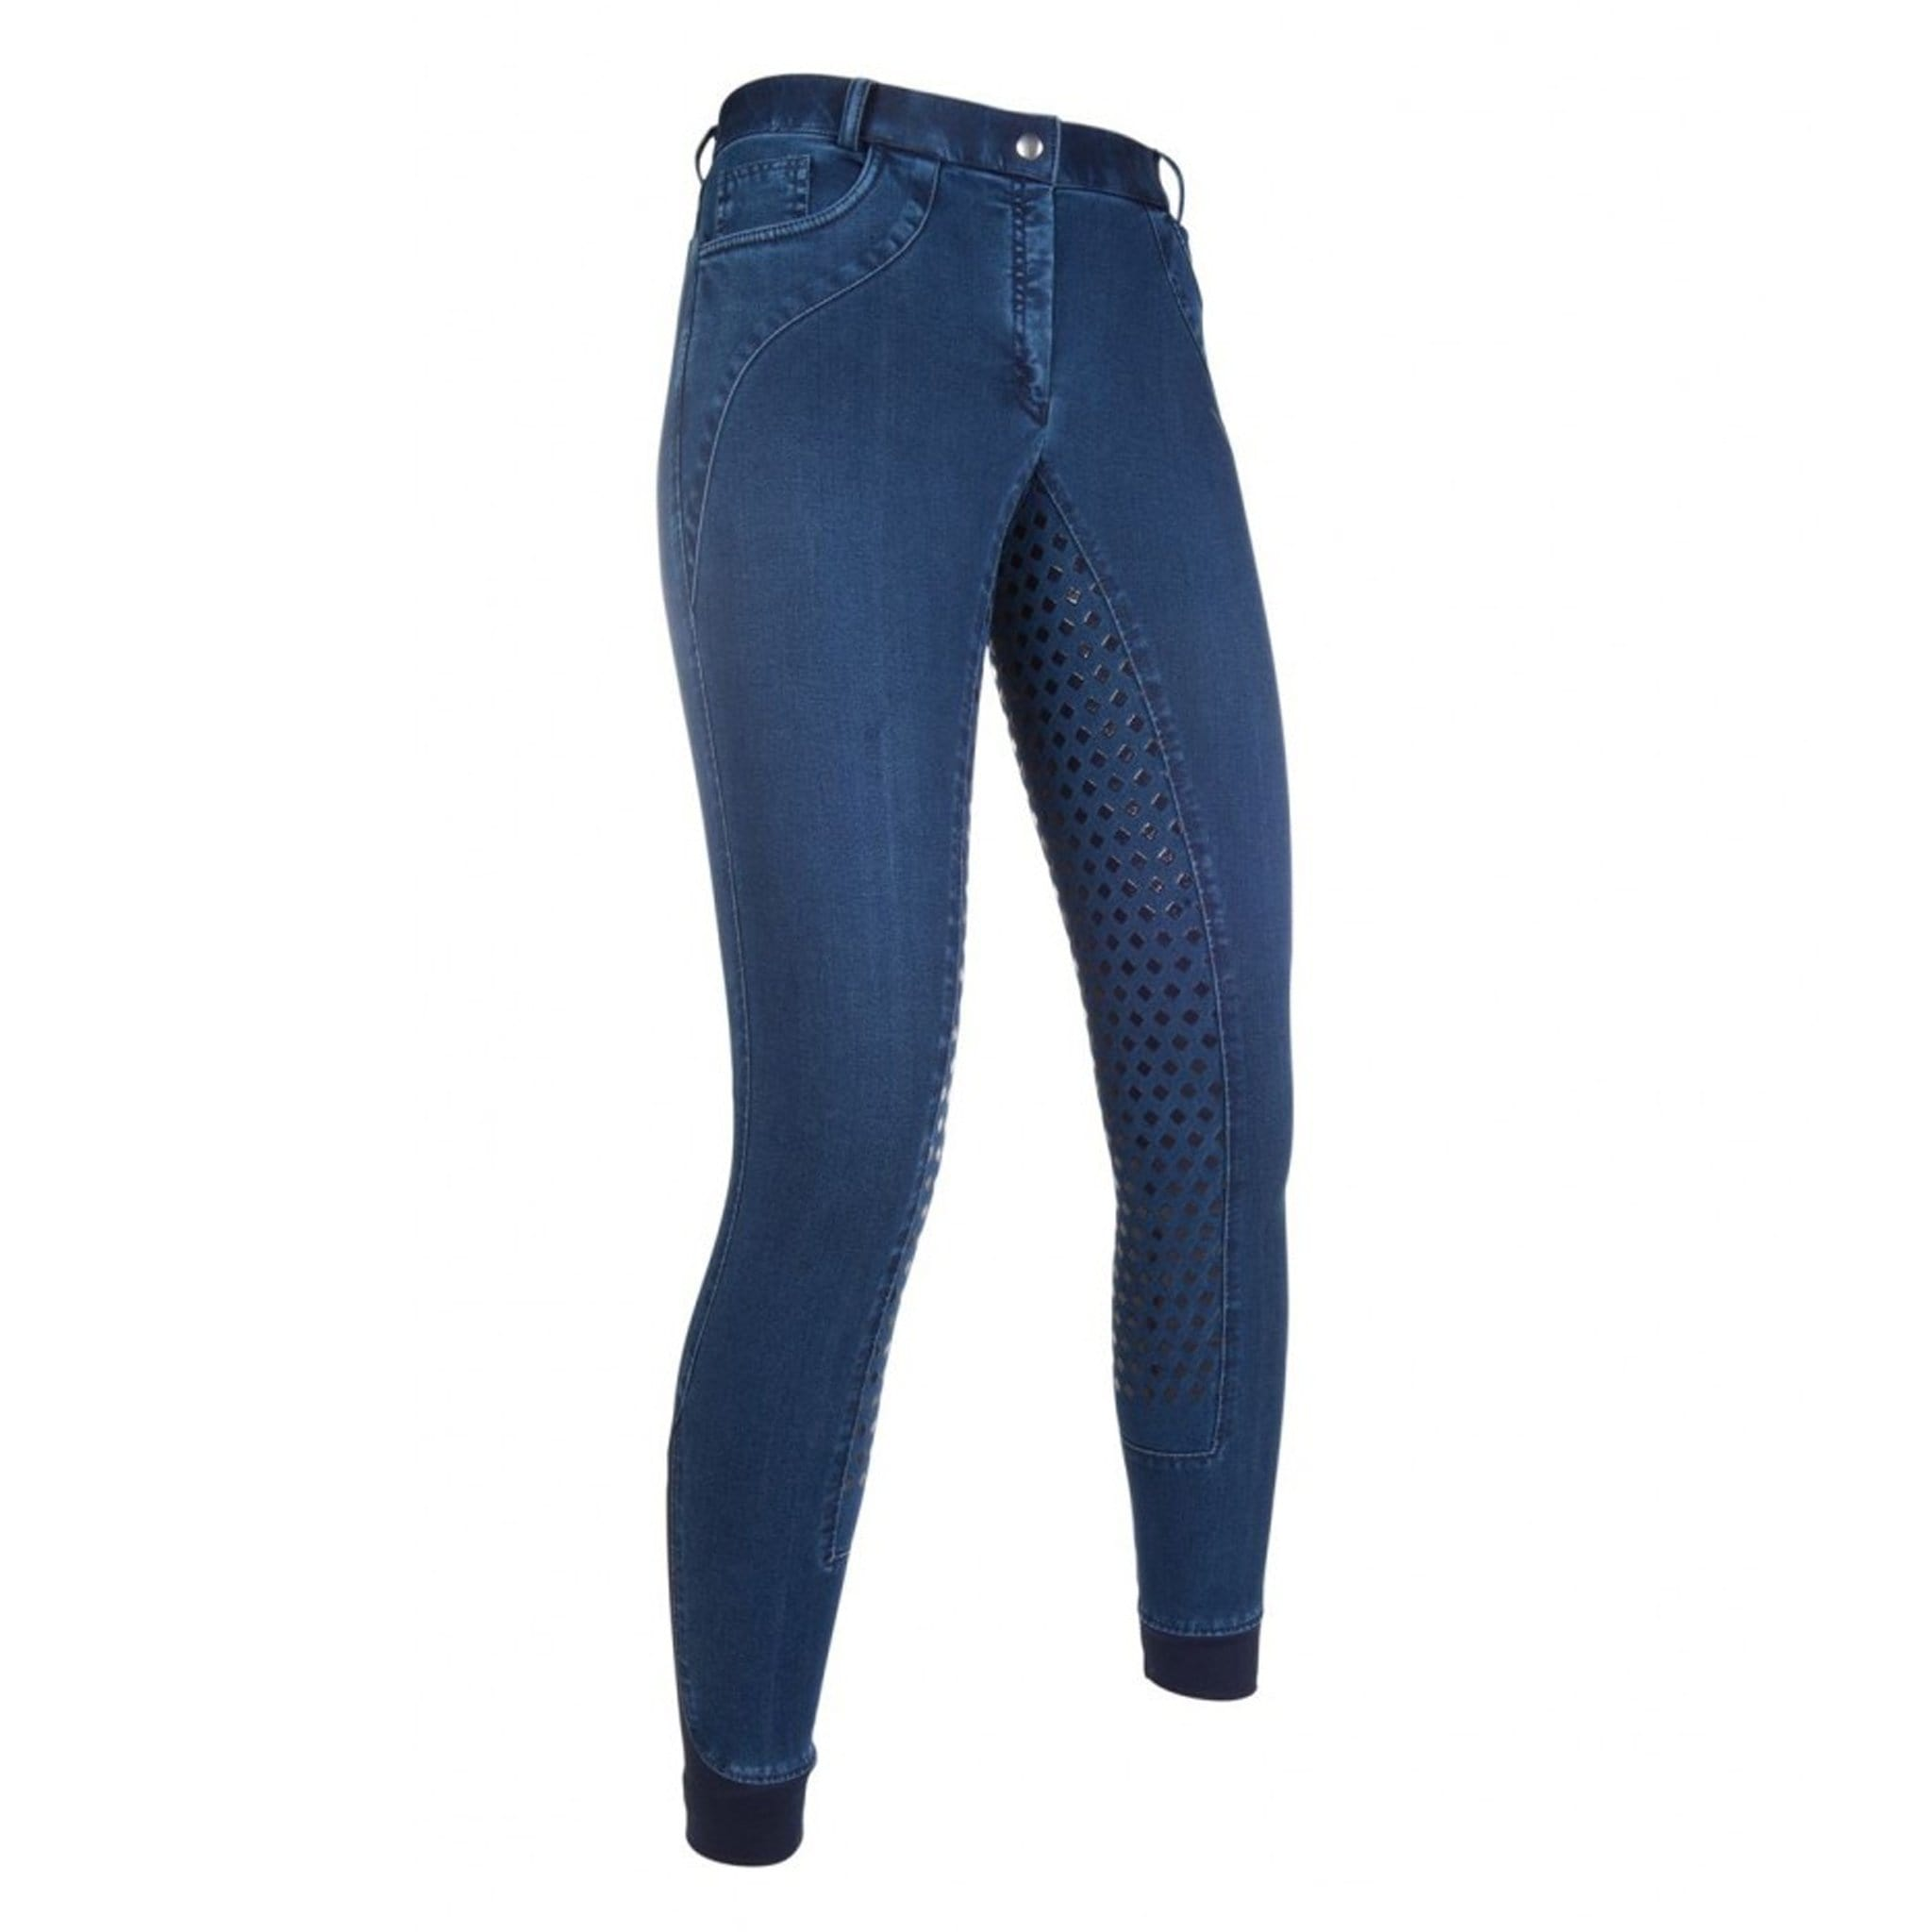 HKM Glorenza Denim Silicone Full Seat Breeches Front And Side 10785.